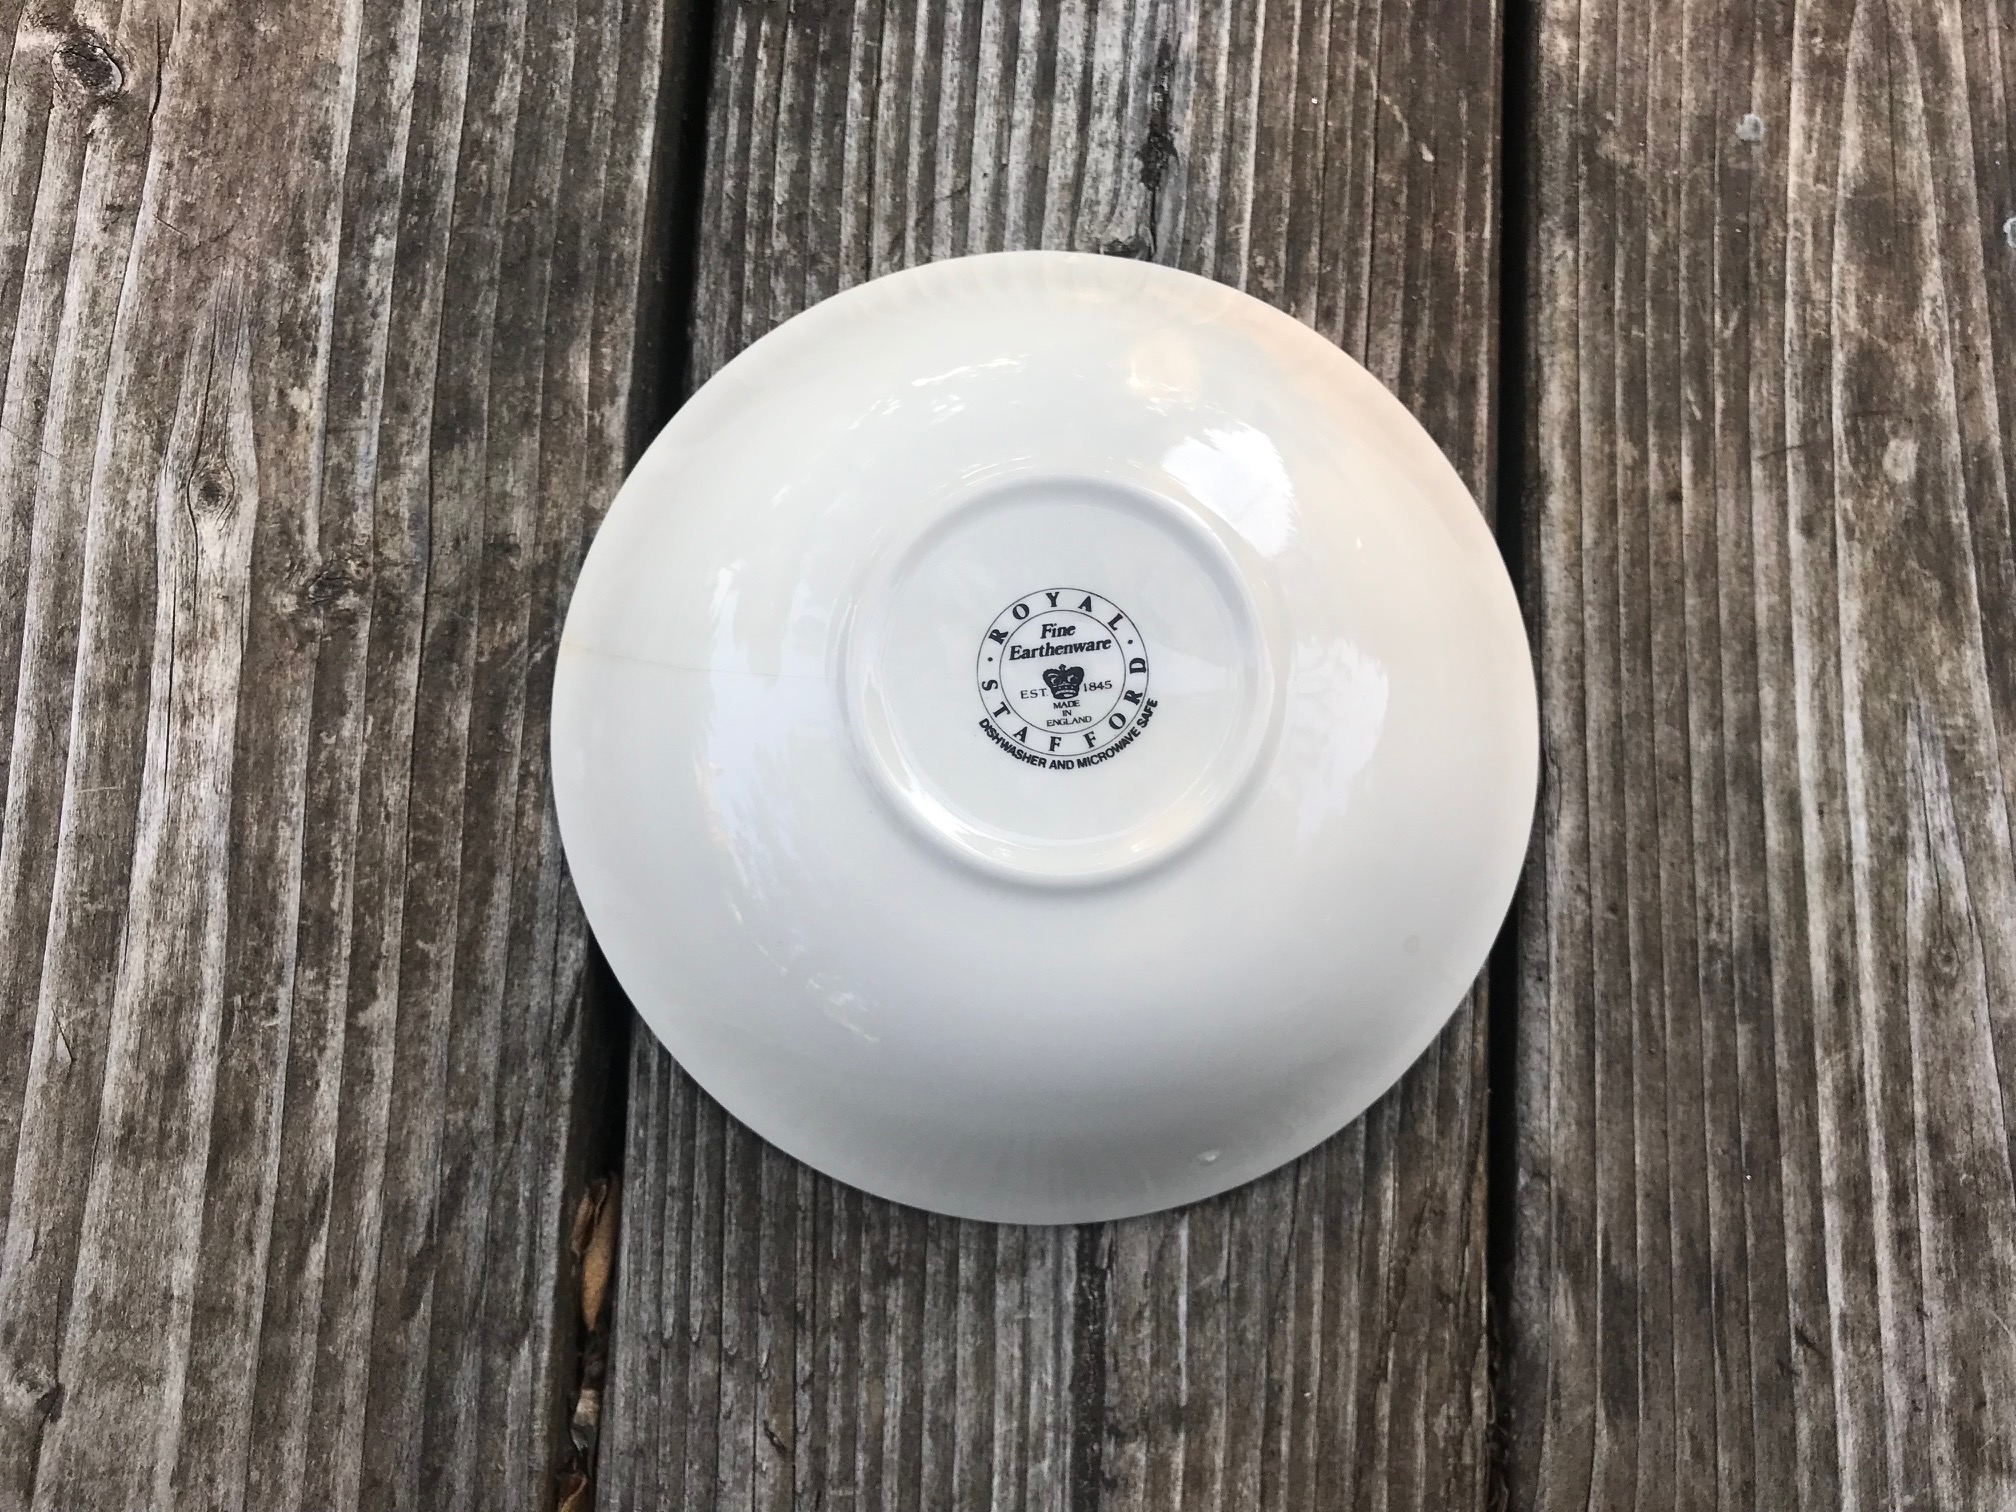 White Glazed Ceramic Royal Stafford Fine Earthenware Made In England Bowl: 66,300 ppm Lead [For Context: 90 ppm Lead is unsafe in children's items.]